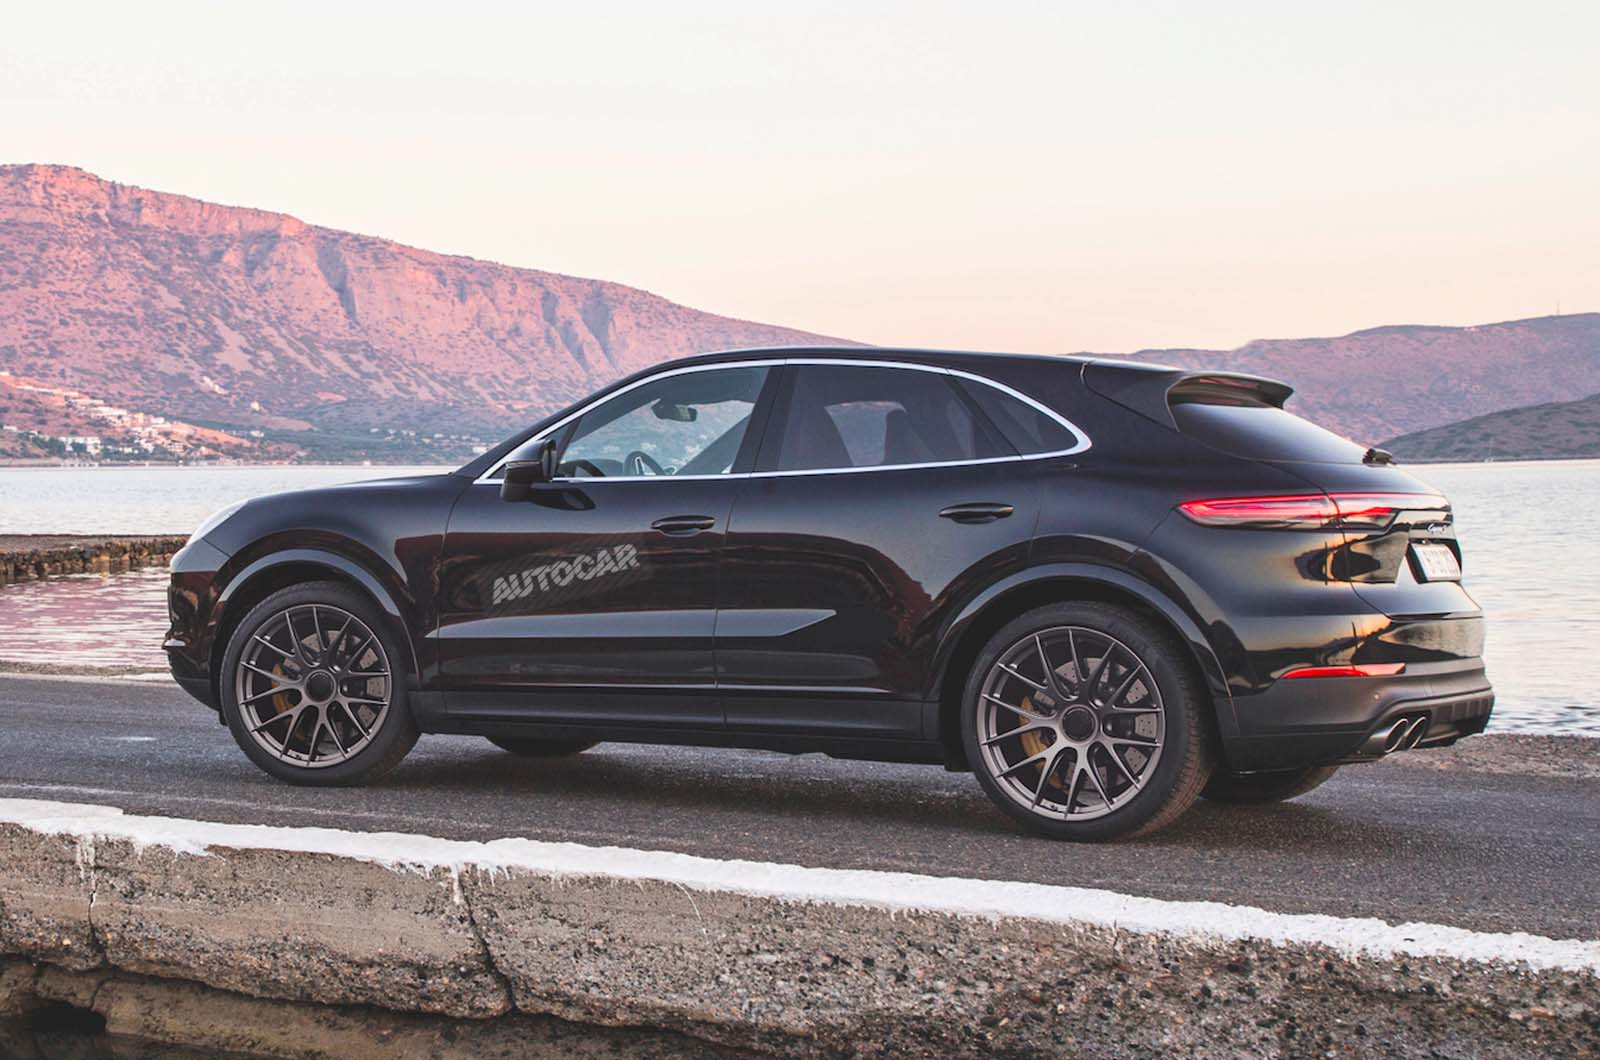 Porsche Cayenne Coupe Official Sketch Revealed Ahead Of Imminent Launch Autocar